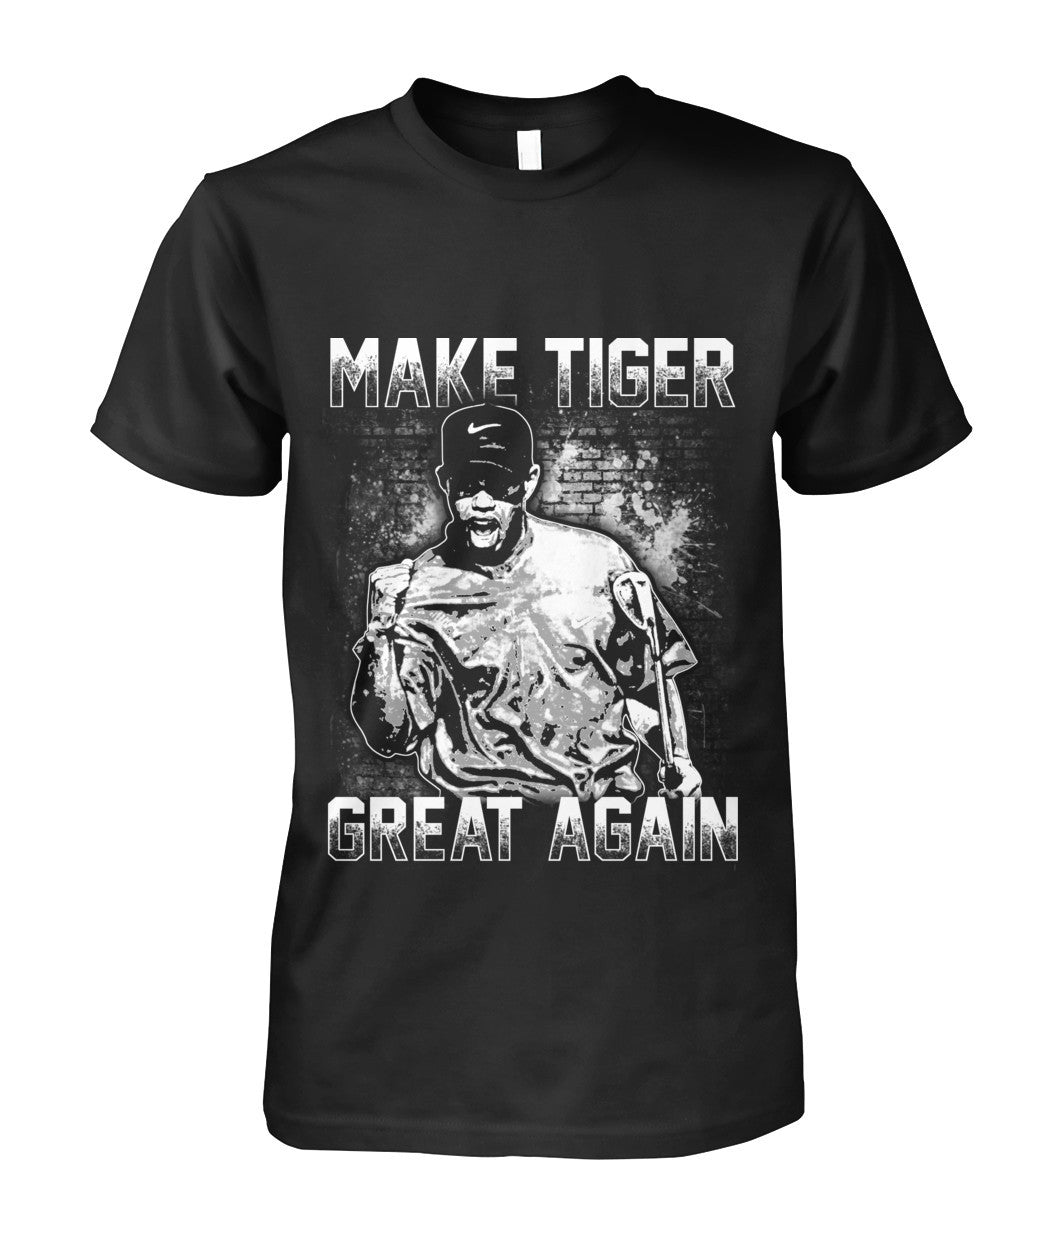 Buy Make Tiger Great Again Shirt-Apparel - TEEHOT.COM